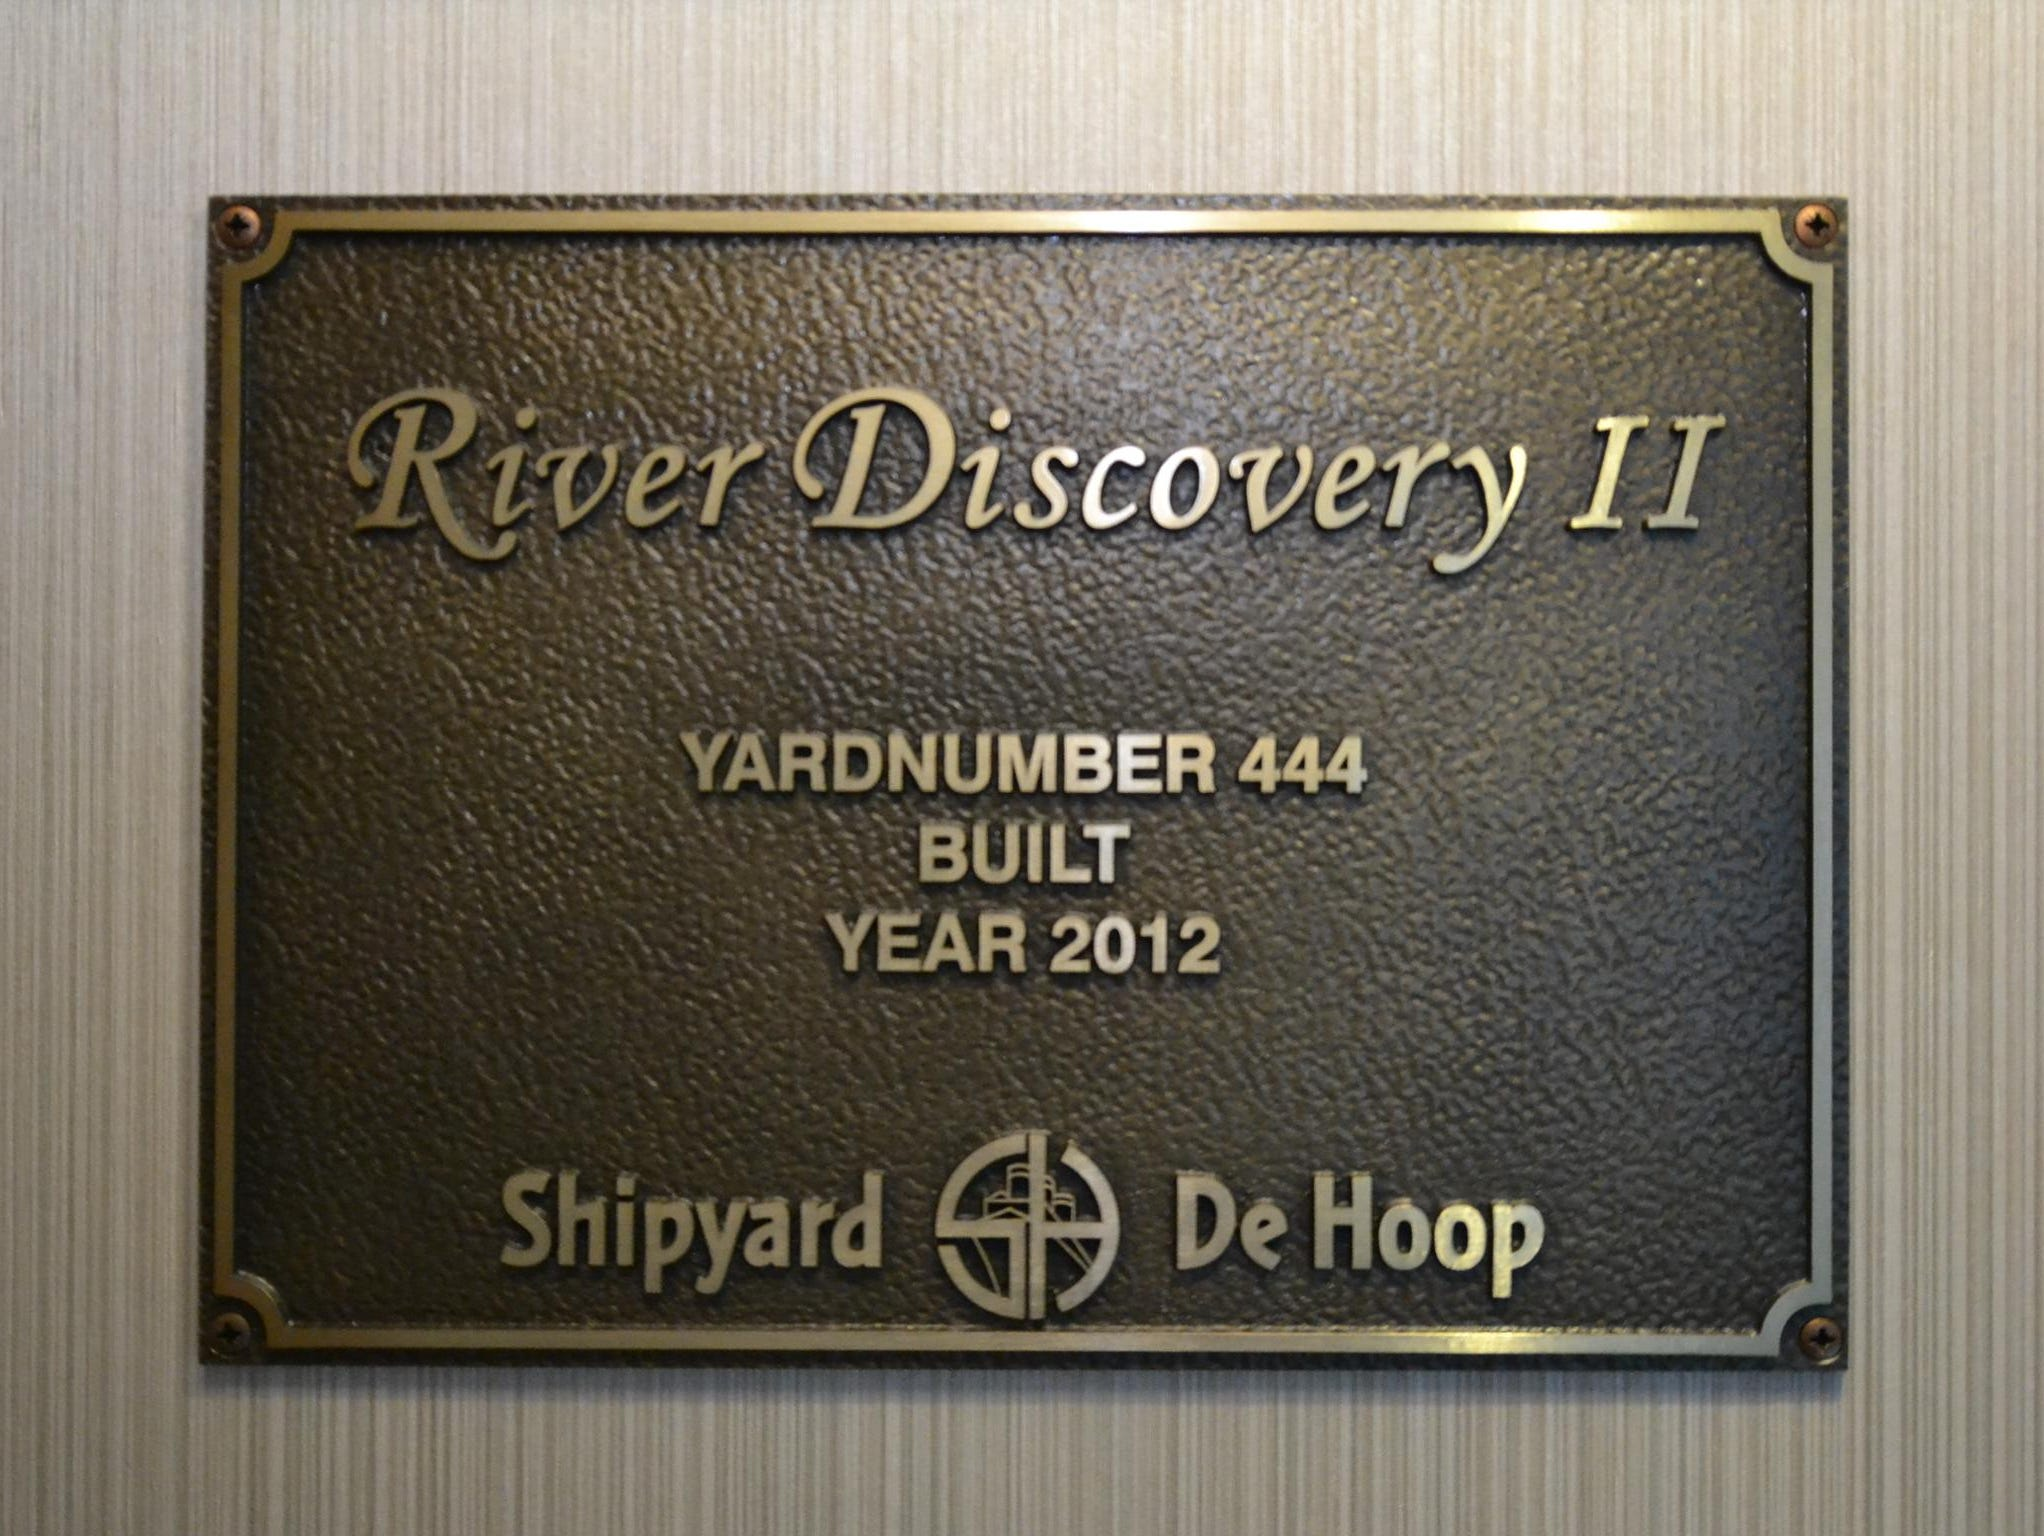 Designed to sail on the Rhine and other European rivers, River Discovery II was built at The Netherlands' Shipyard deHoop.